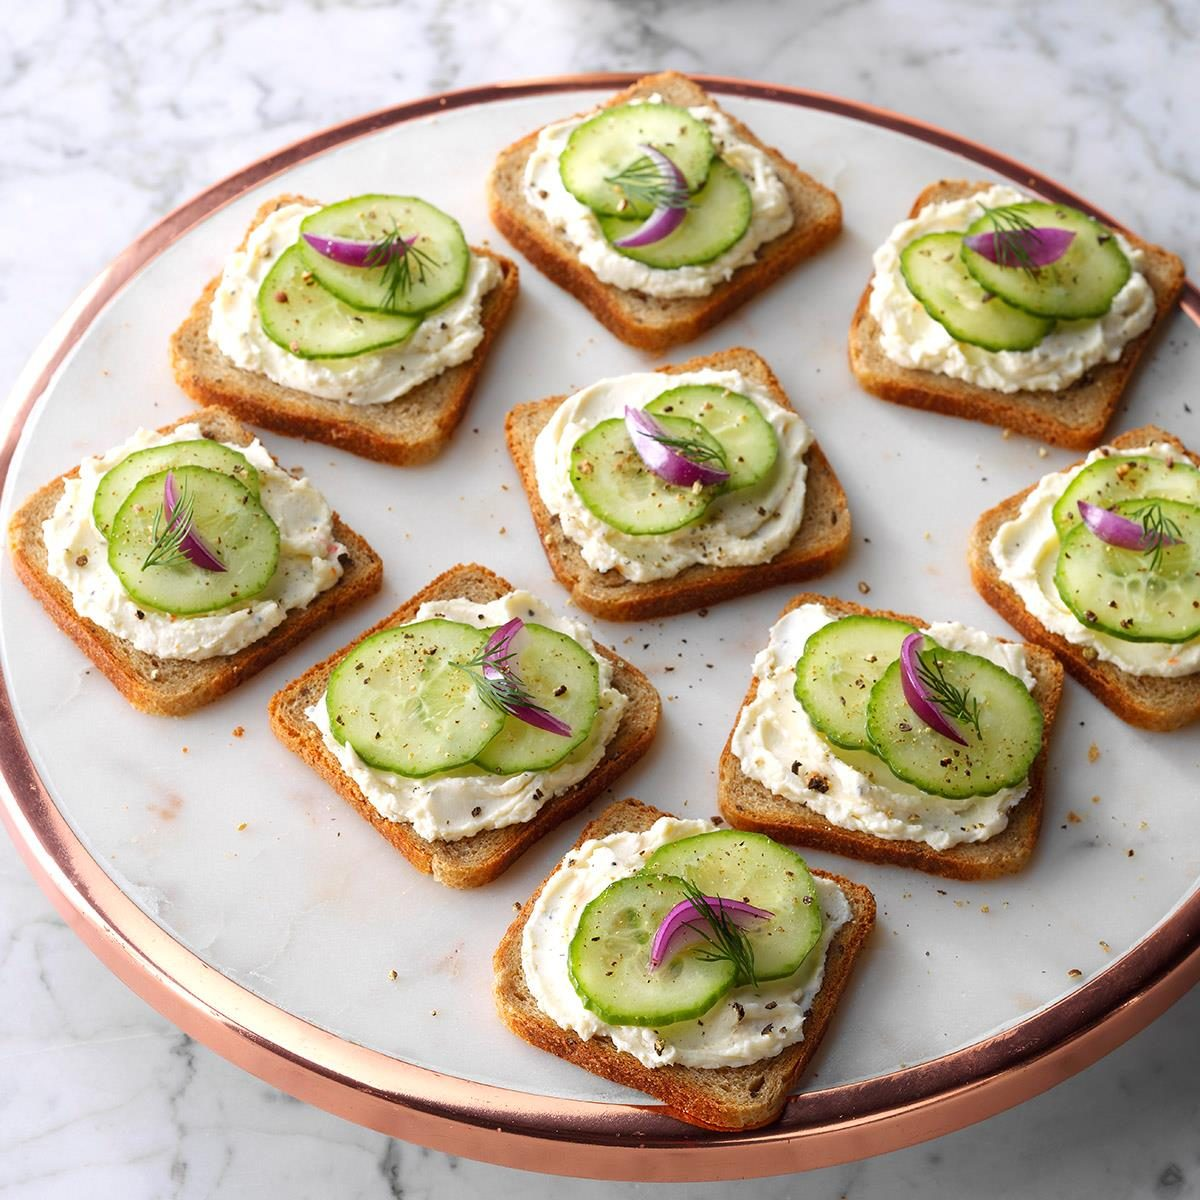 cucumber party sandwiches taste of home. Black Bedroom Furniture Sets. Home Design Ideas